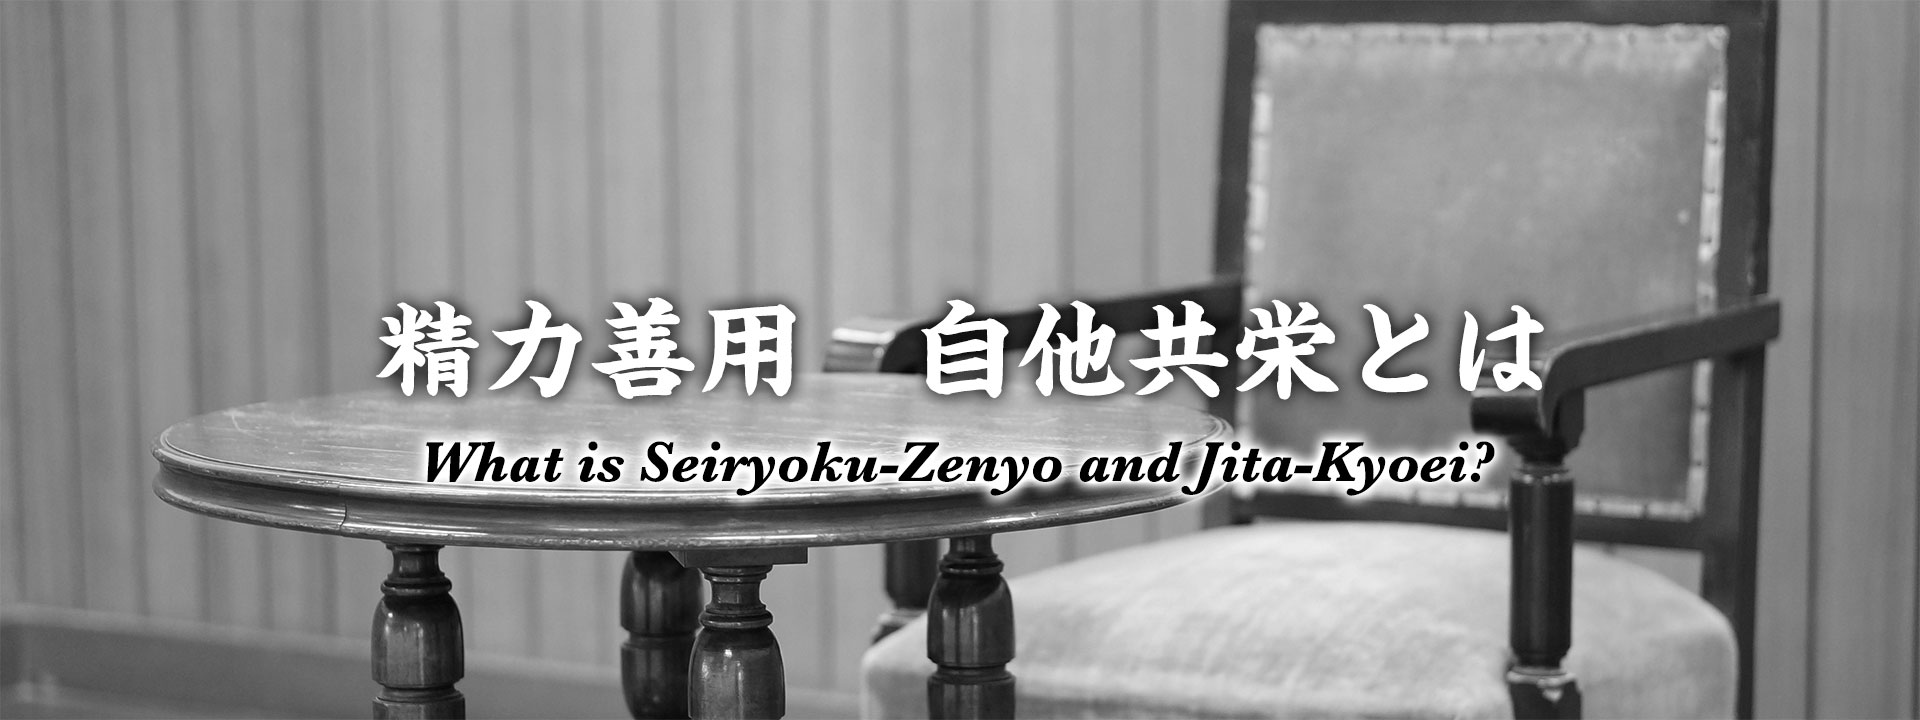 What is Seiryoku-Zenyo and Jita-Kyoei?